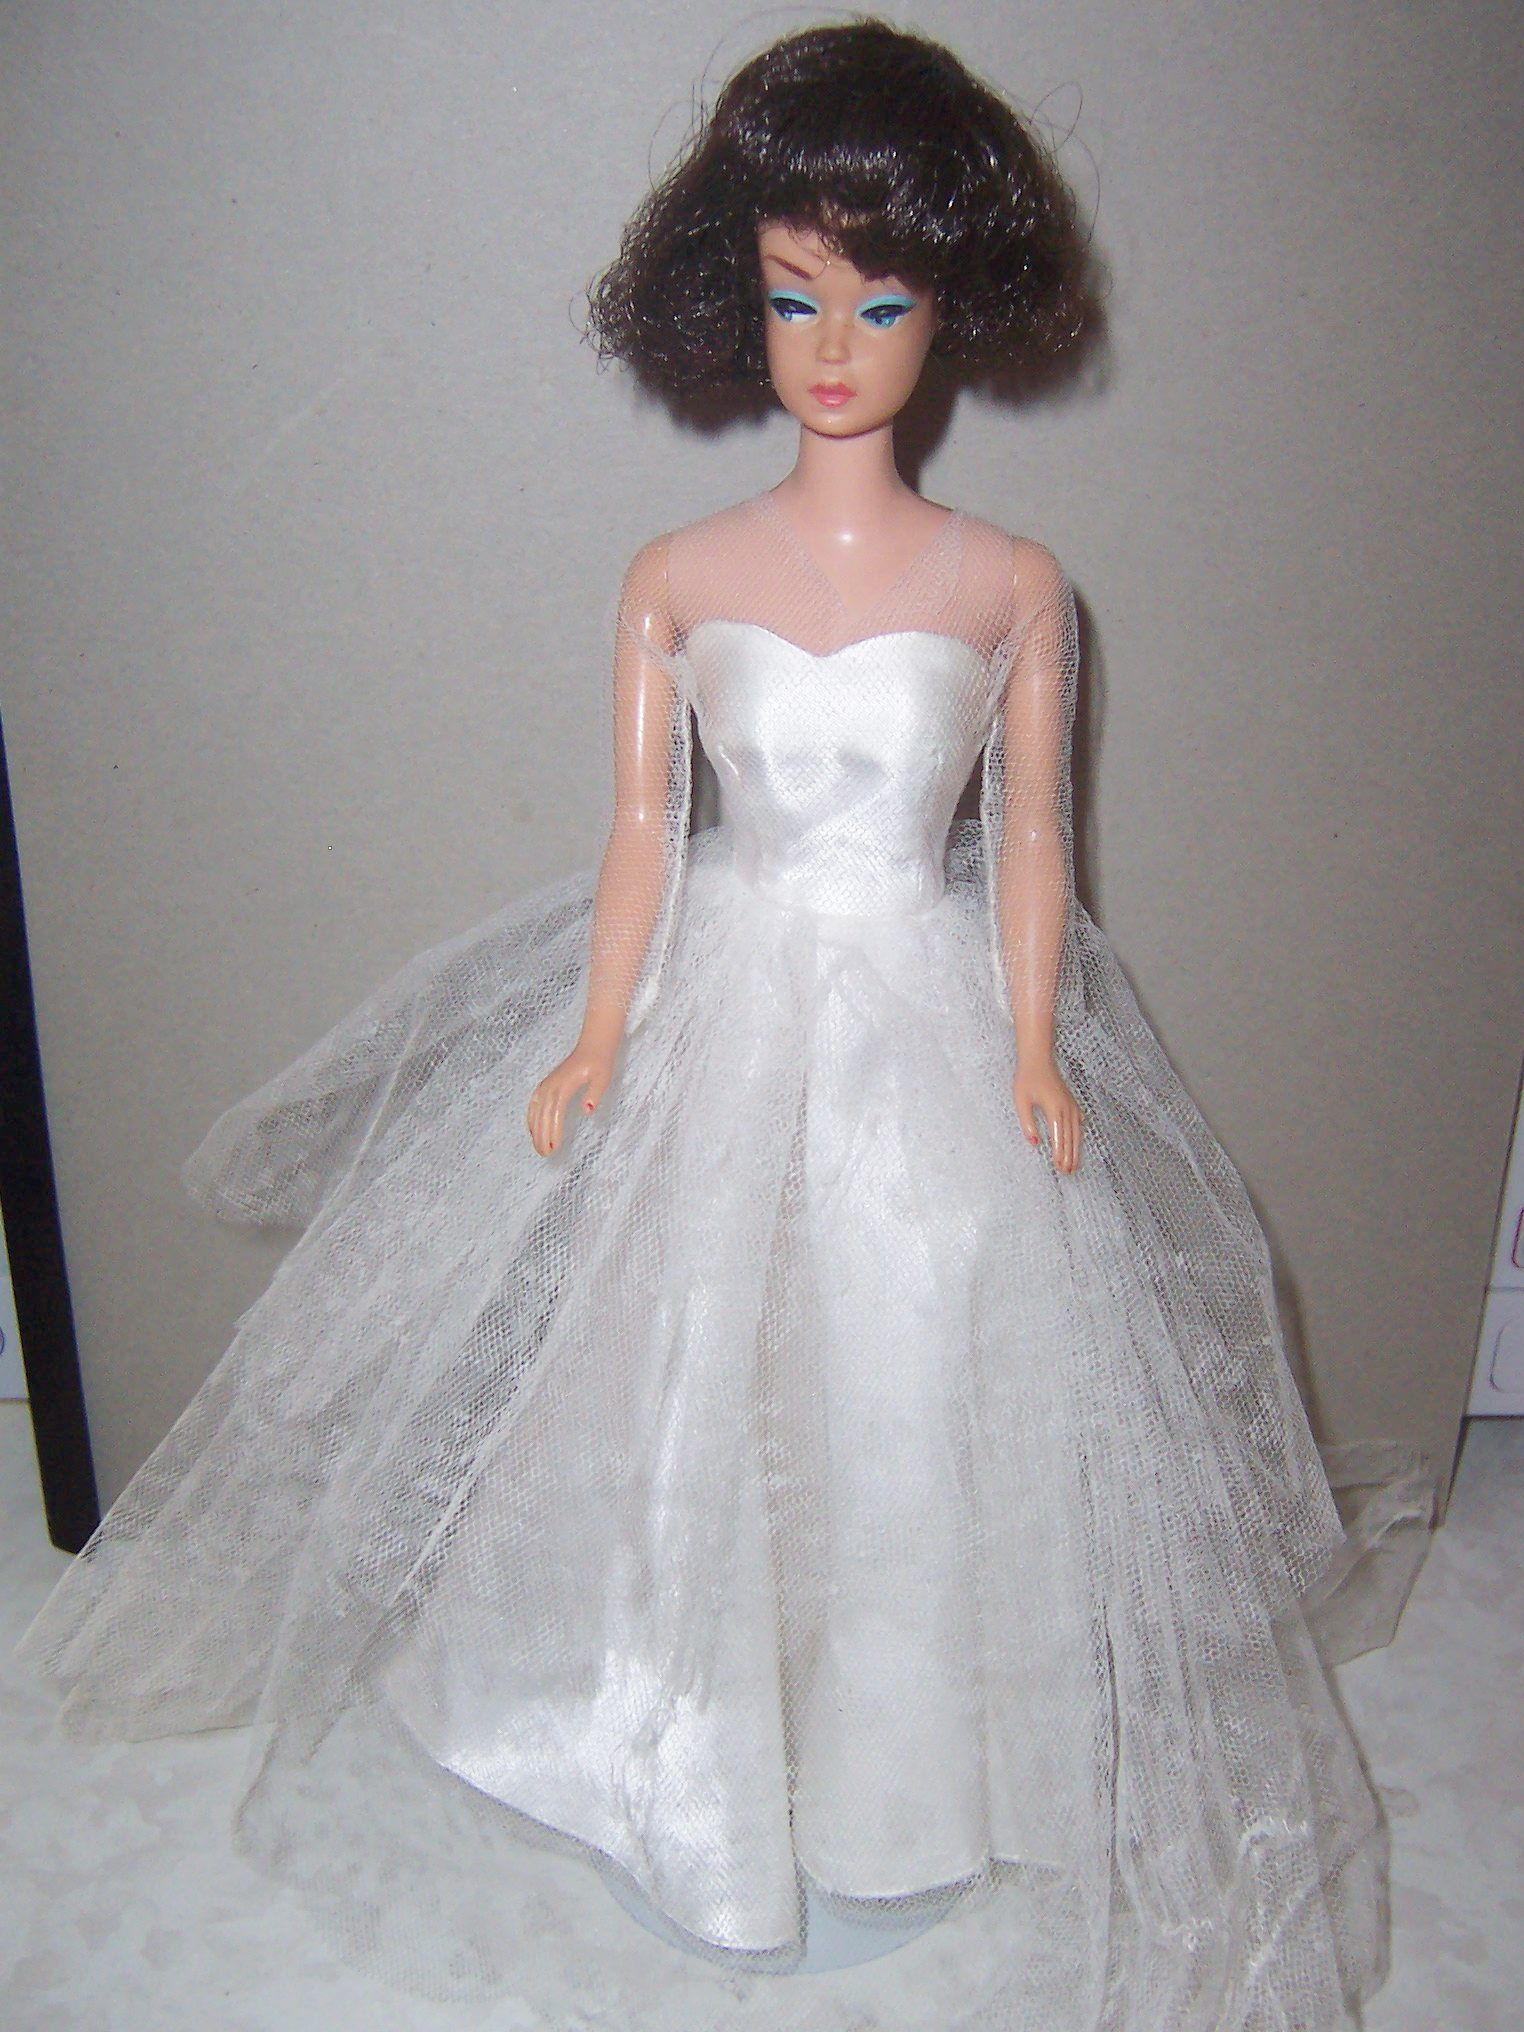 Fashion Queen Barbie doll in Wedding Day Gown dress set 1960s